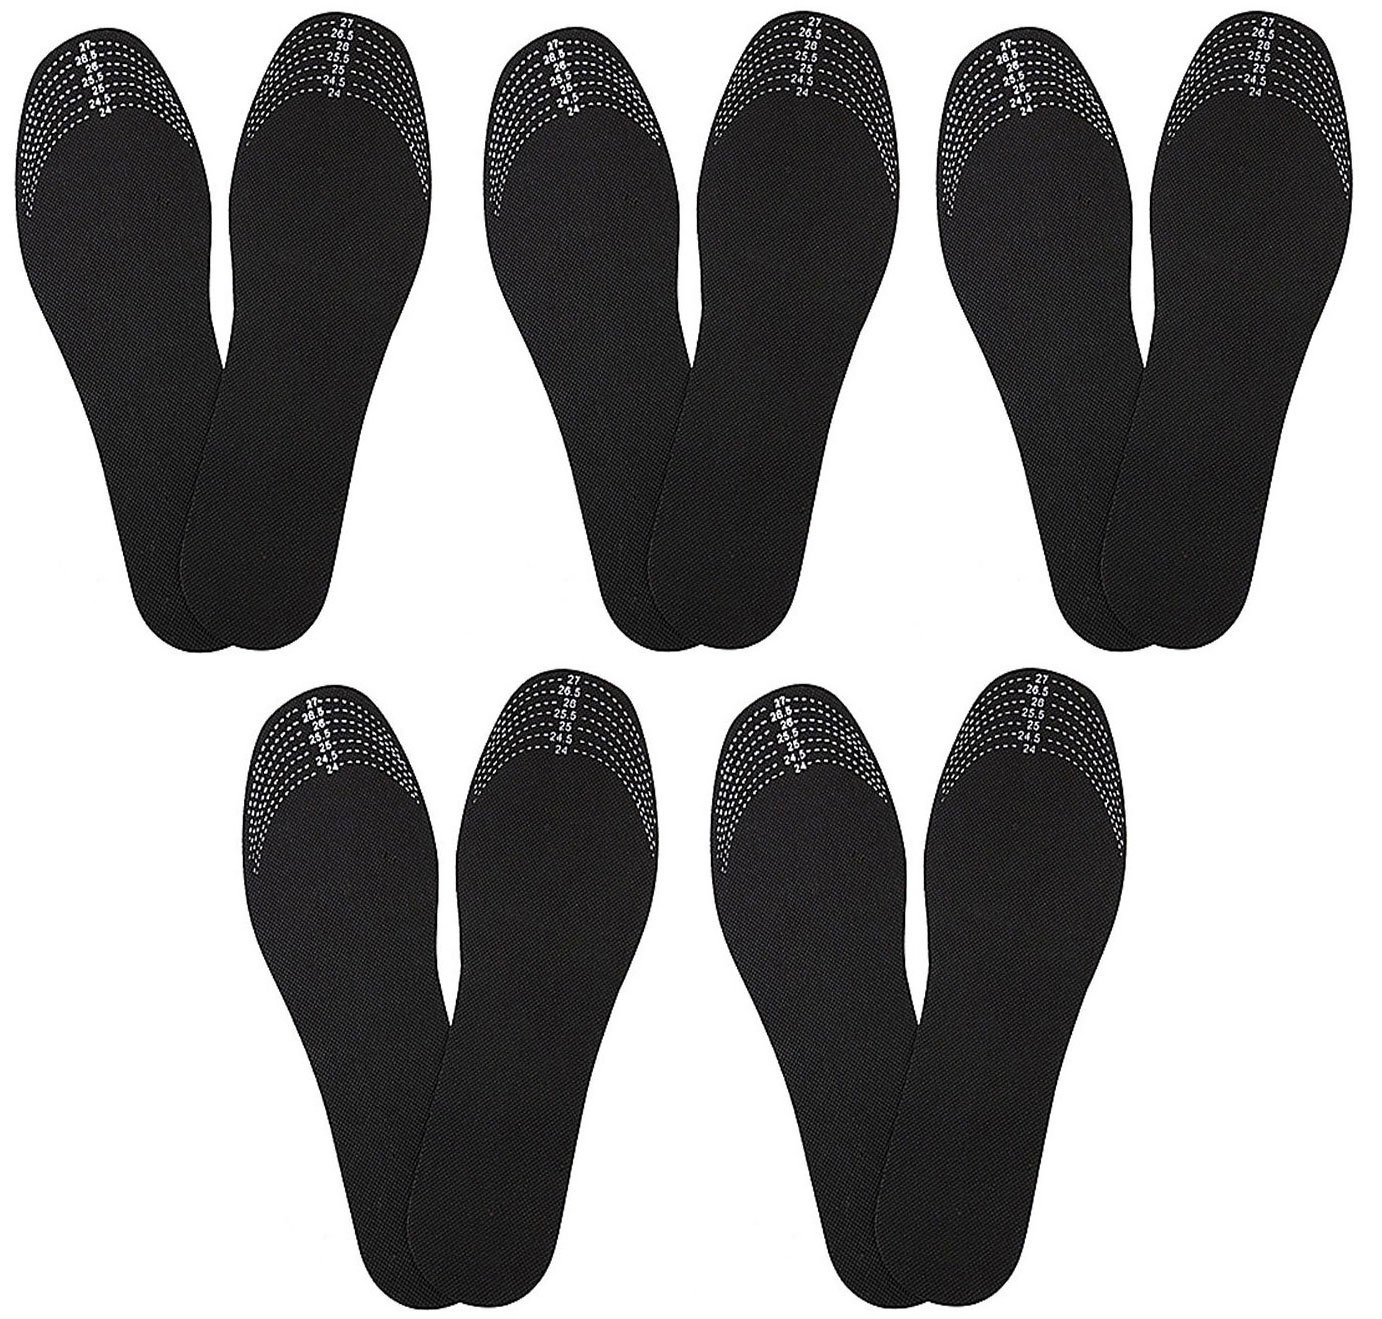 Pack of 5 Pairs Which Is 10 Insoles to Kill Off the Cause of Odor From Smelly Feet and Shoes Naturally with Activated Charcoal Wetness Drying and Odor Absorbing Shoe Insoles for Women's 7-12 and Mens 5.5-10.5 USA and Canada Shoe Sizes куртка mazine champ jacket fw14 navy 5 xl